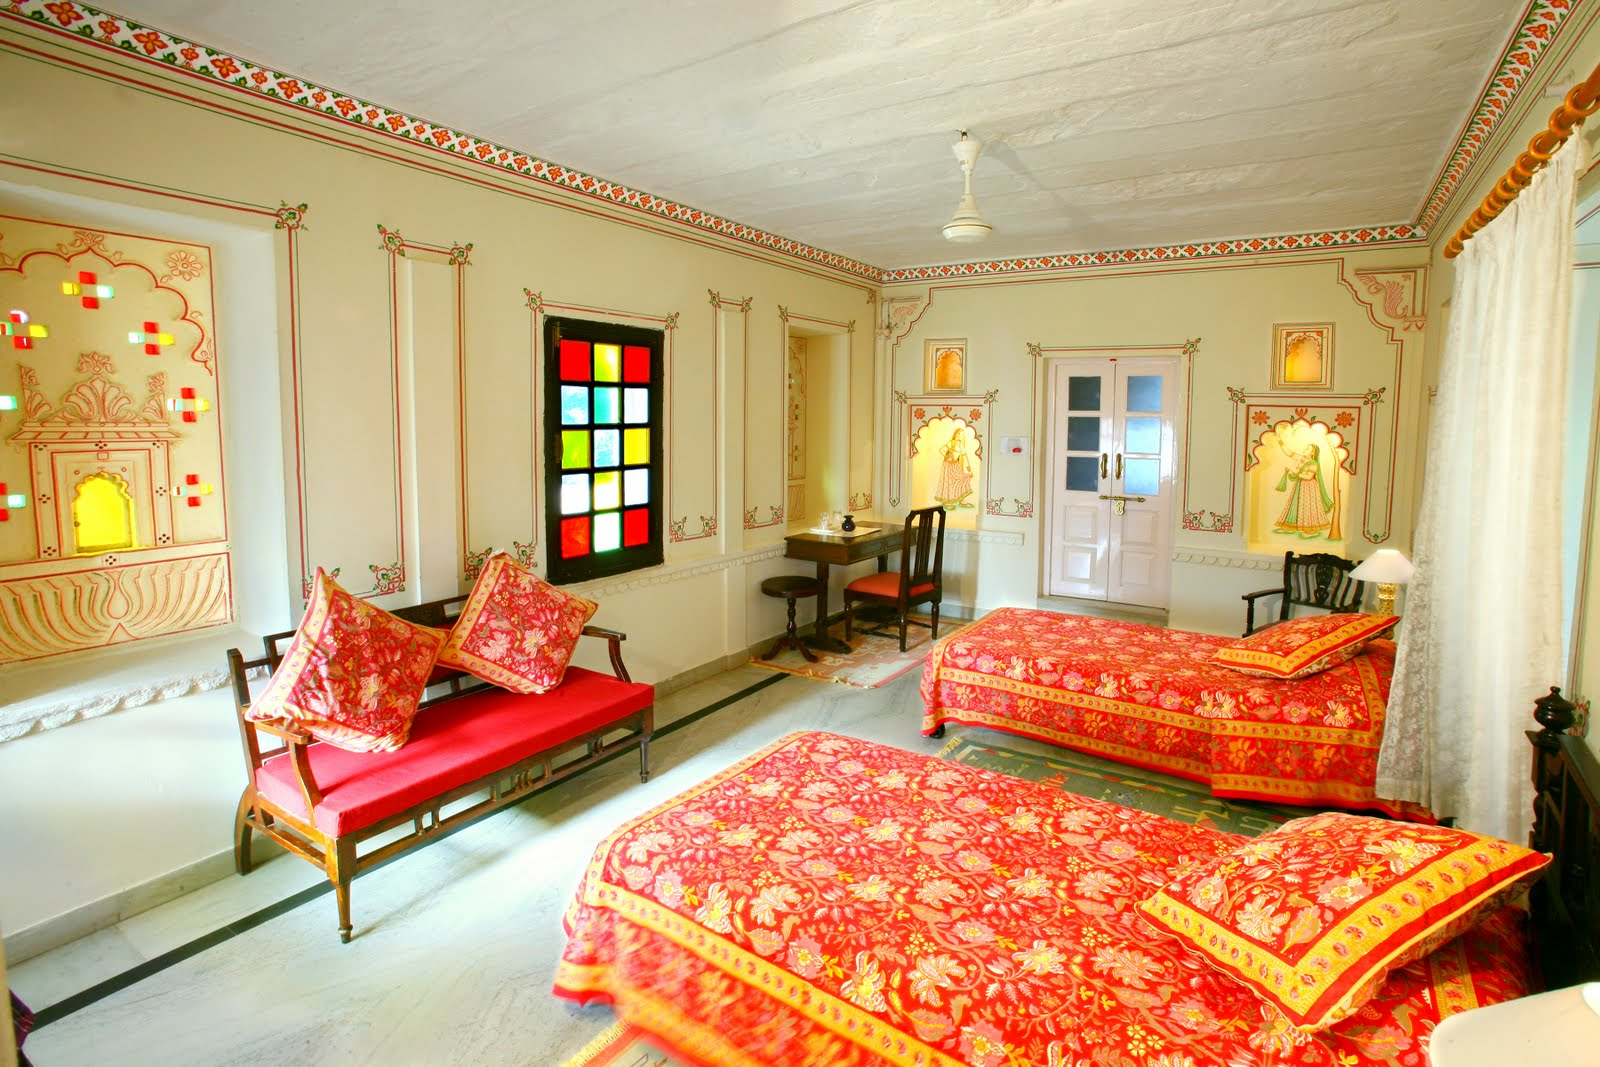 Rajasthani style interior design ideas palace interiors for Interior decoration design ideas